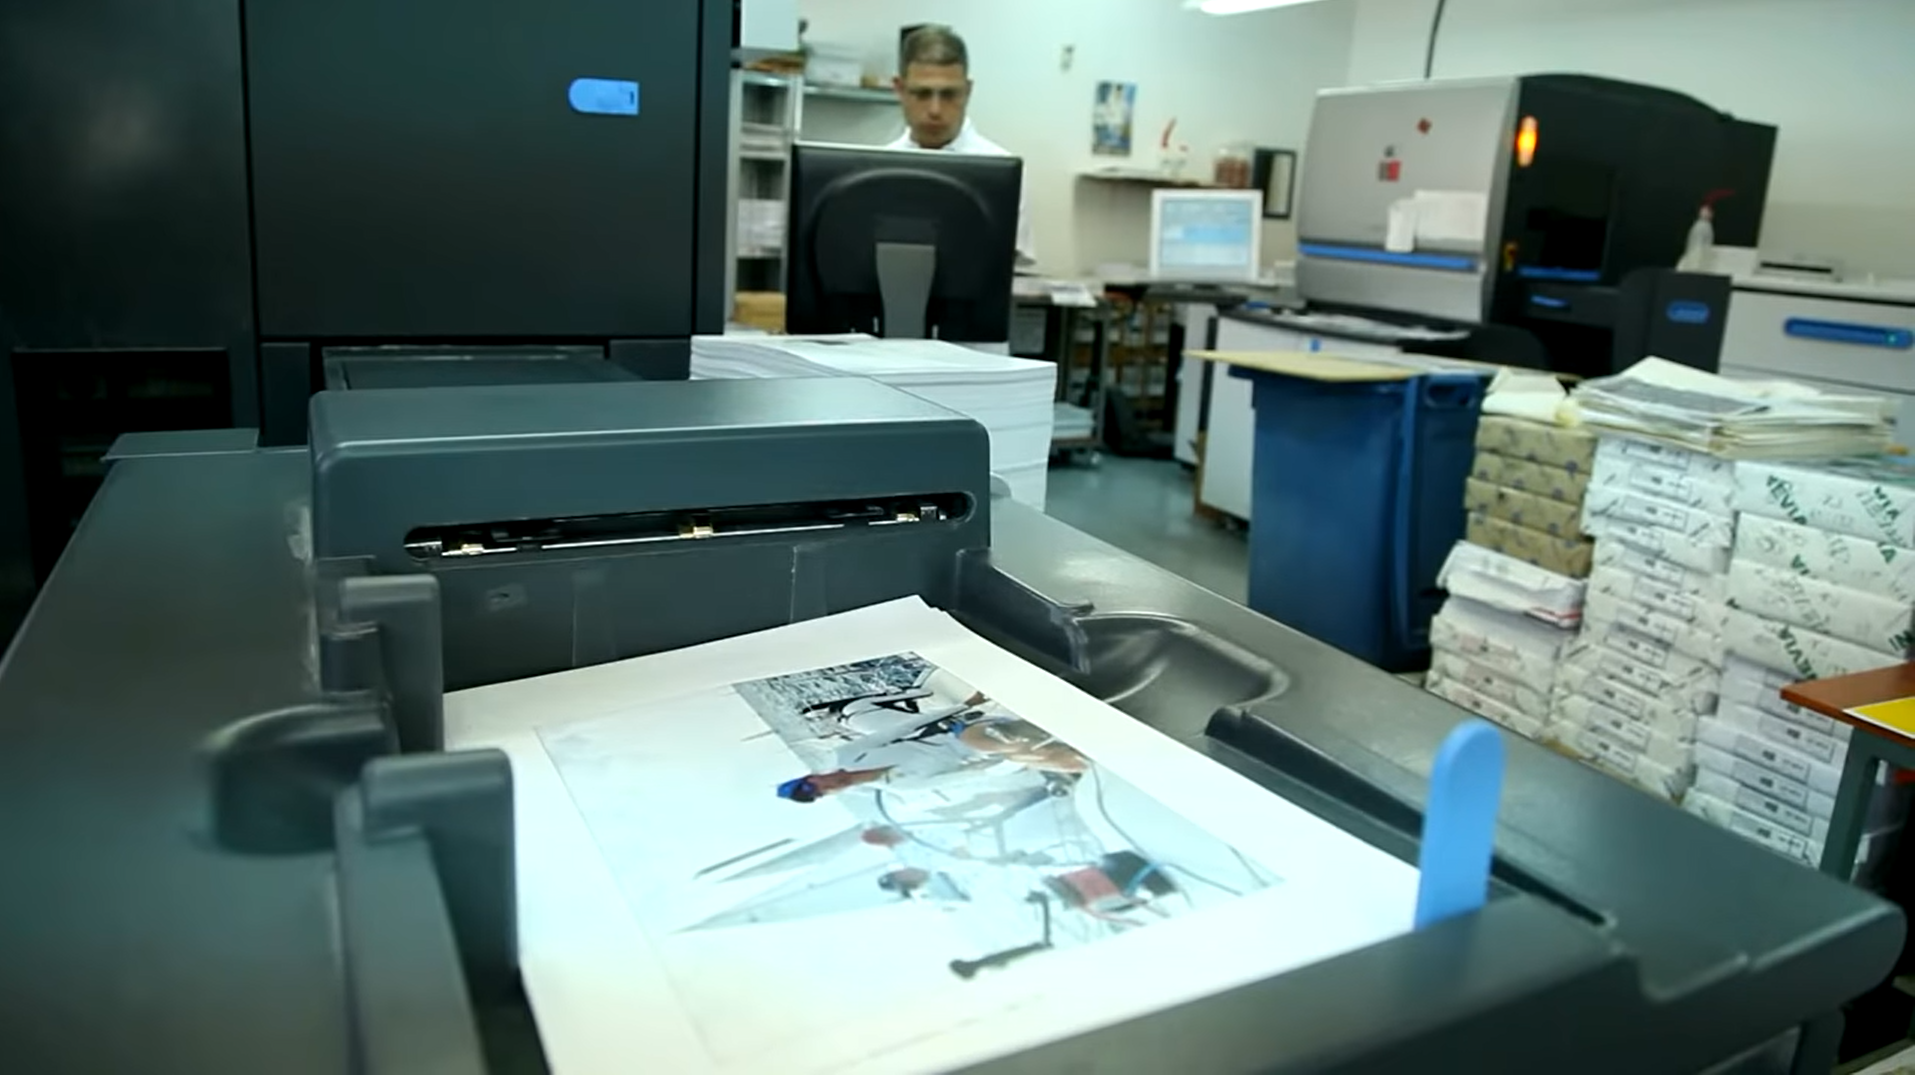 Ultimate TechnoGraphics - HP Indigo Customer Lupa Gains Productivity with Ultimate Impostrip® - HP Indigo Press